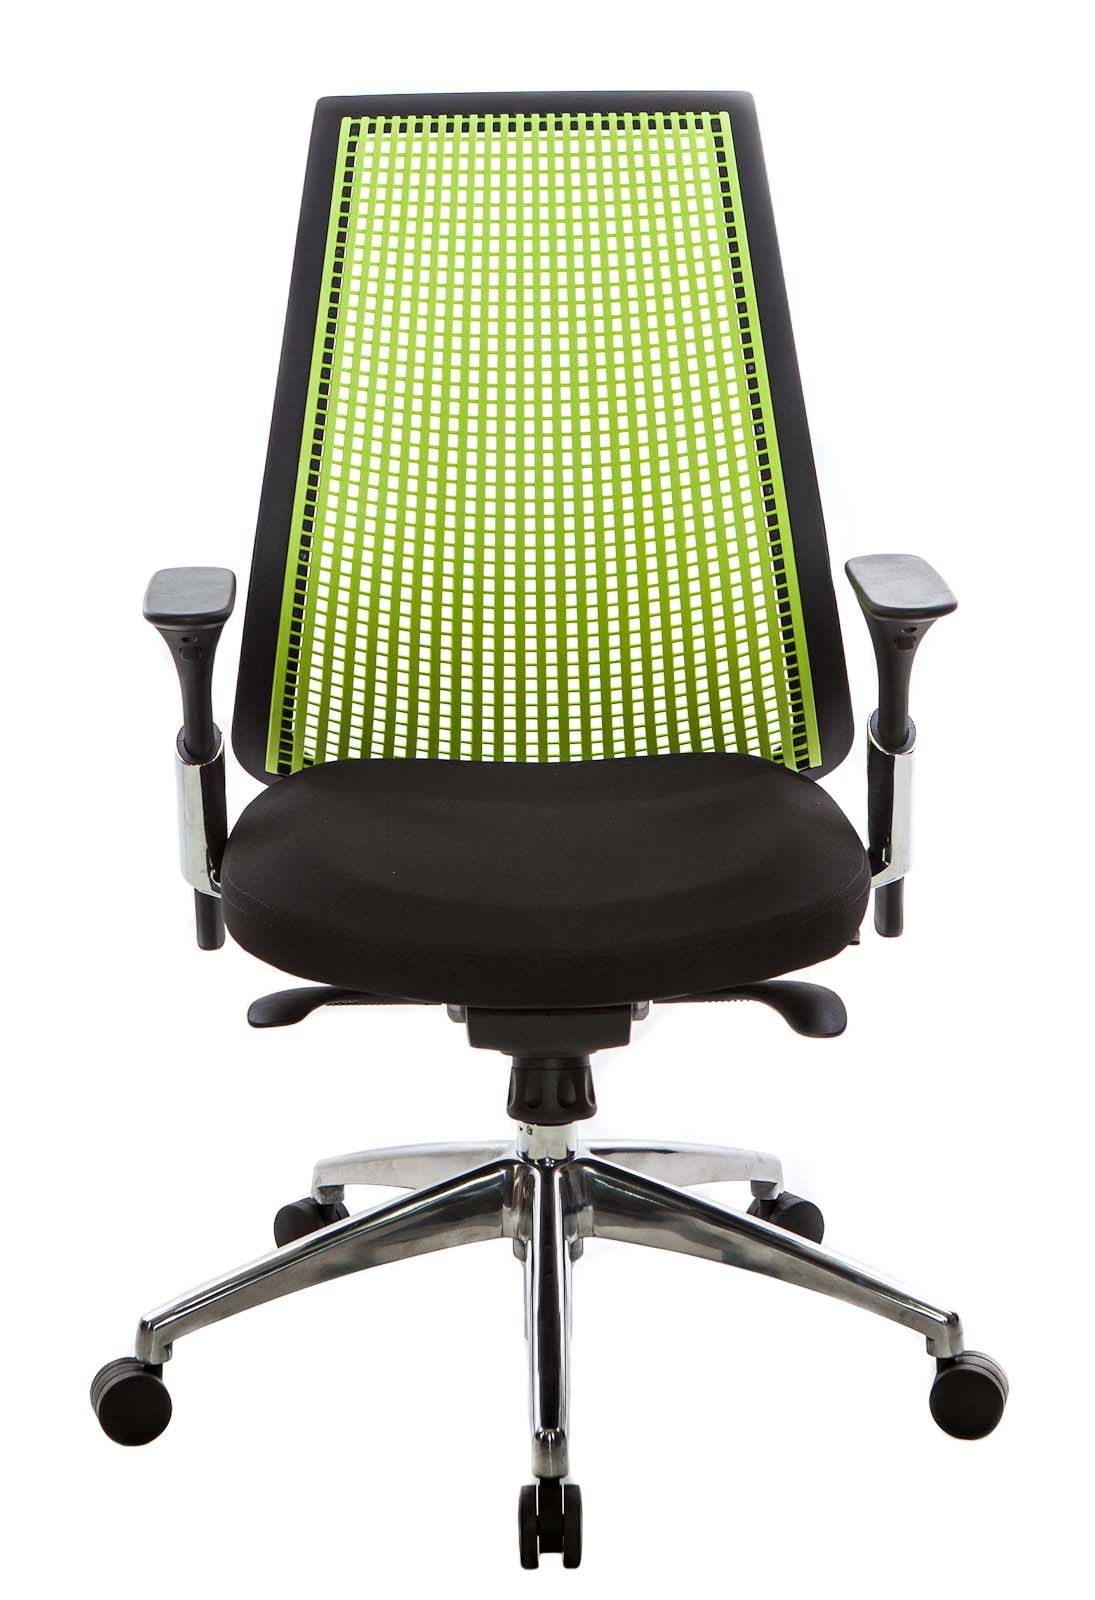 Introducing Series 8 Kiwi Mesh Office Chair Buy Your